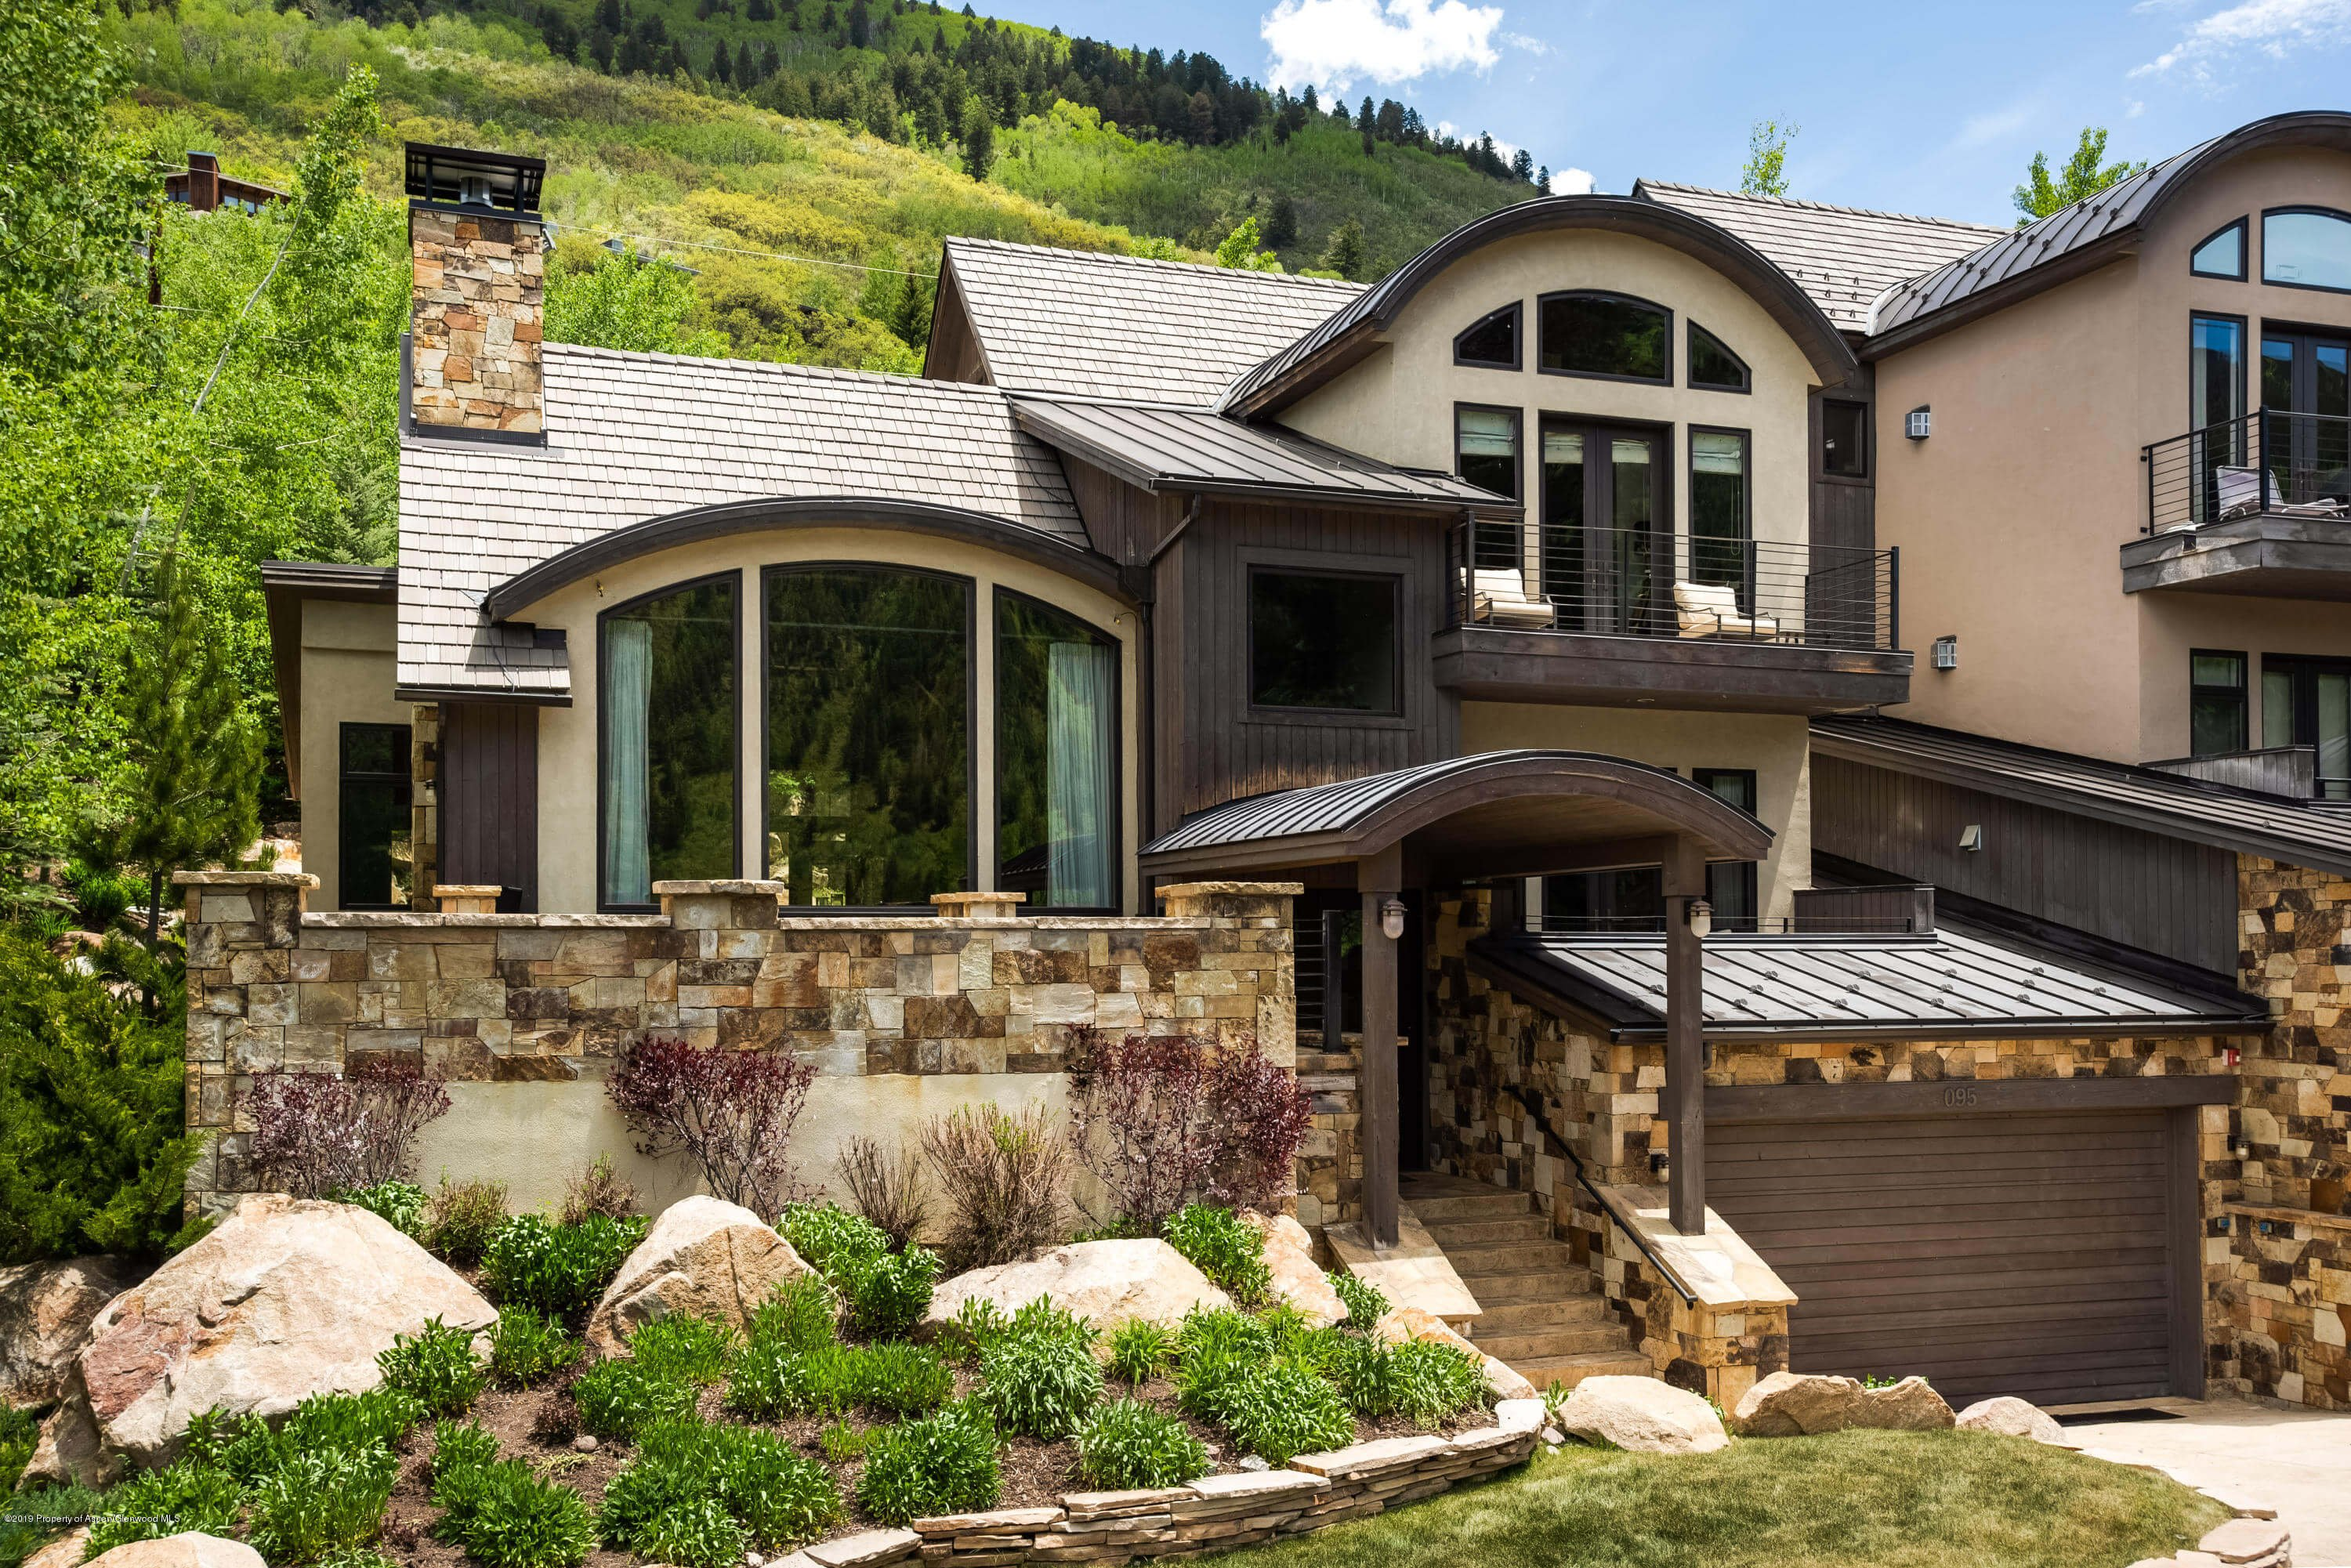 2007 Built Mountain Valley Half-Duplex Sells at $5MM/$1,372 SF Furnished Image